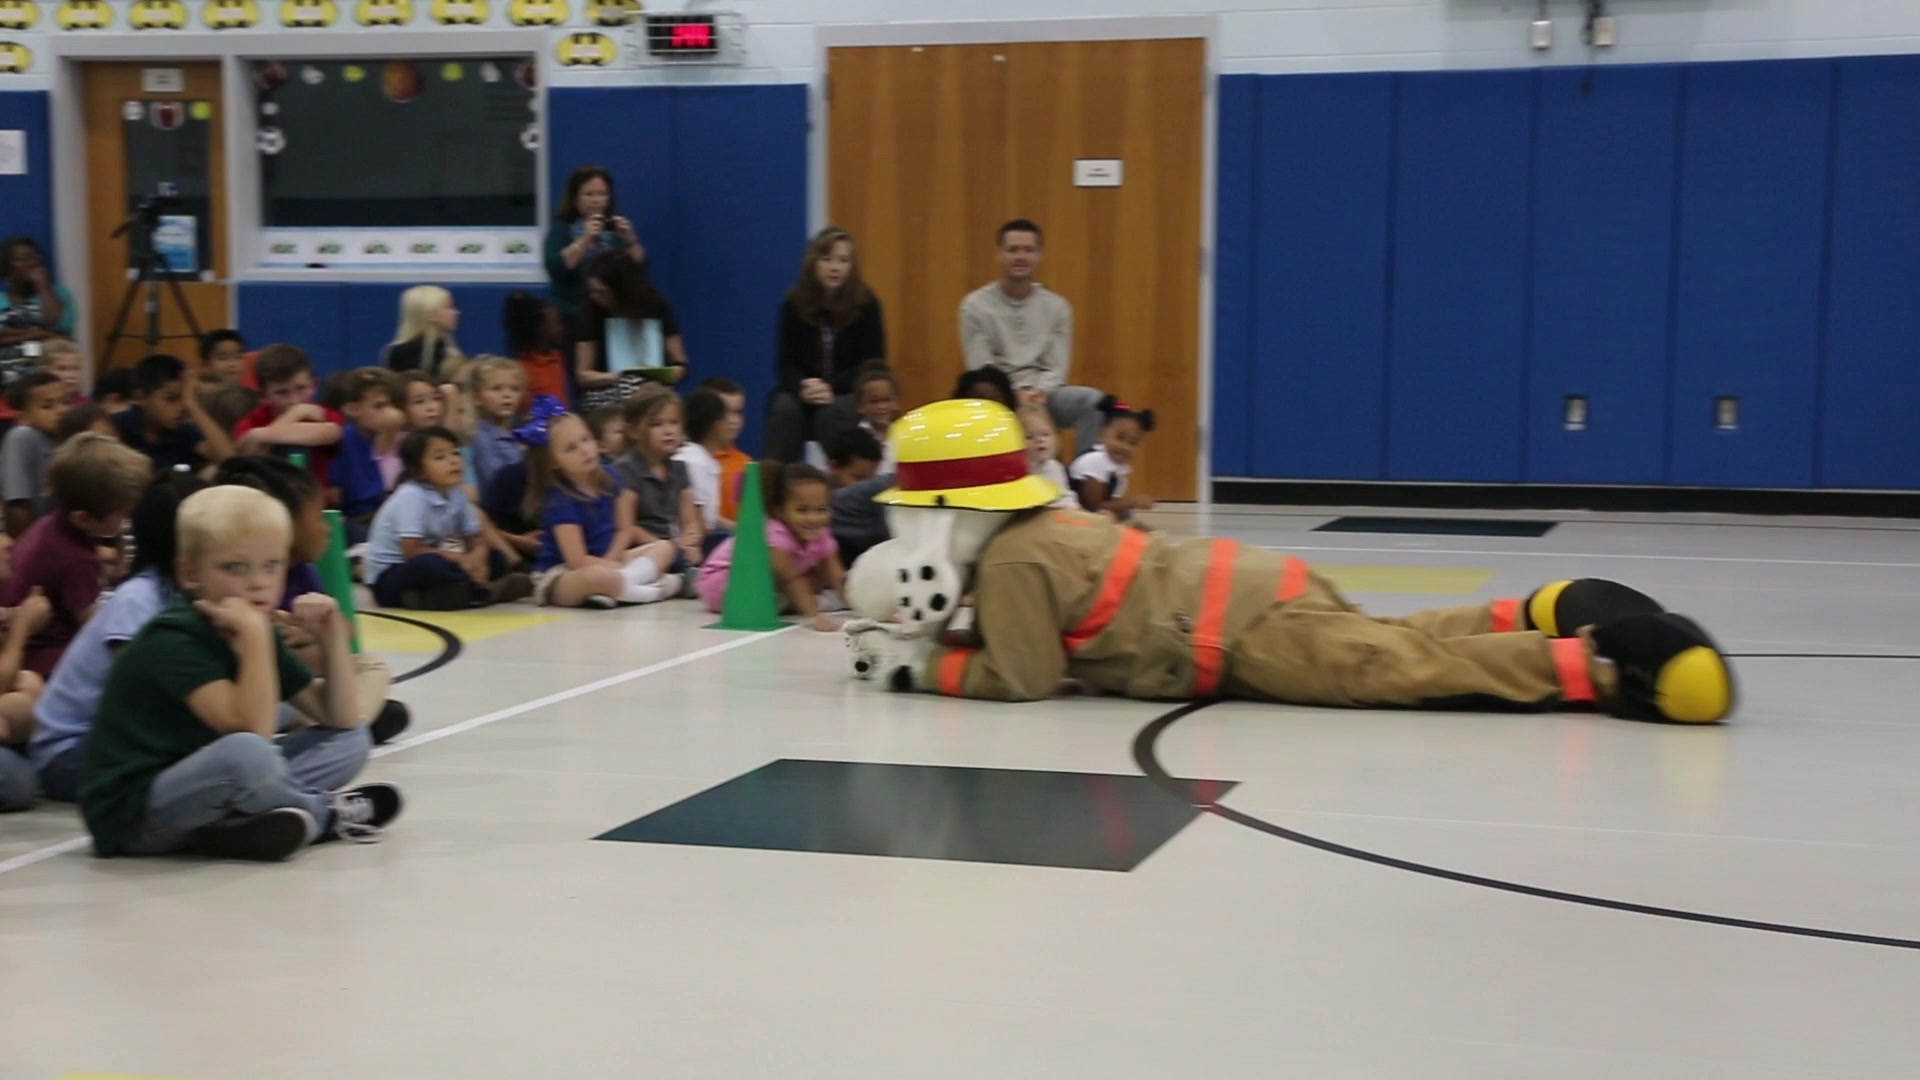 Firefighters and their mascot Sparky dance during a fire prevention training event at DeLalio Elementary School on Marine Corps Air Station New River, North Carolina, Oct. 21, 2019. The event is held annually at schools and Child Development Centers on Marine Corps Base Camp Lejeune and MCAS New River to promote education on fire safety. (U.S. Marine Corps video by Lance Cpl. Katie Campbell)